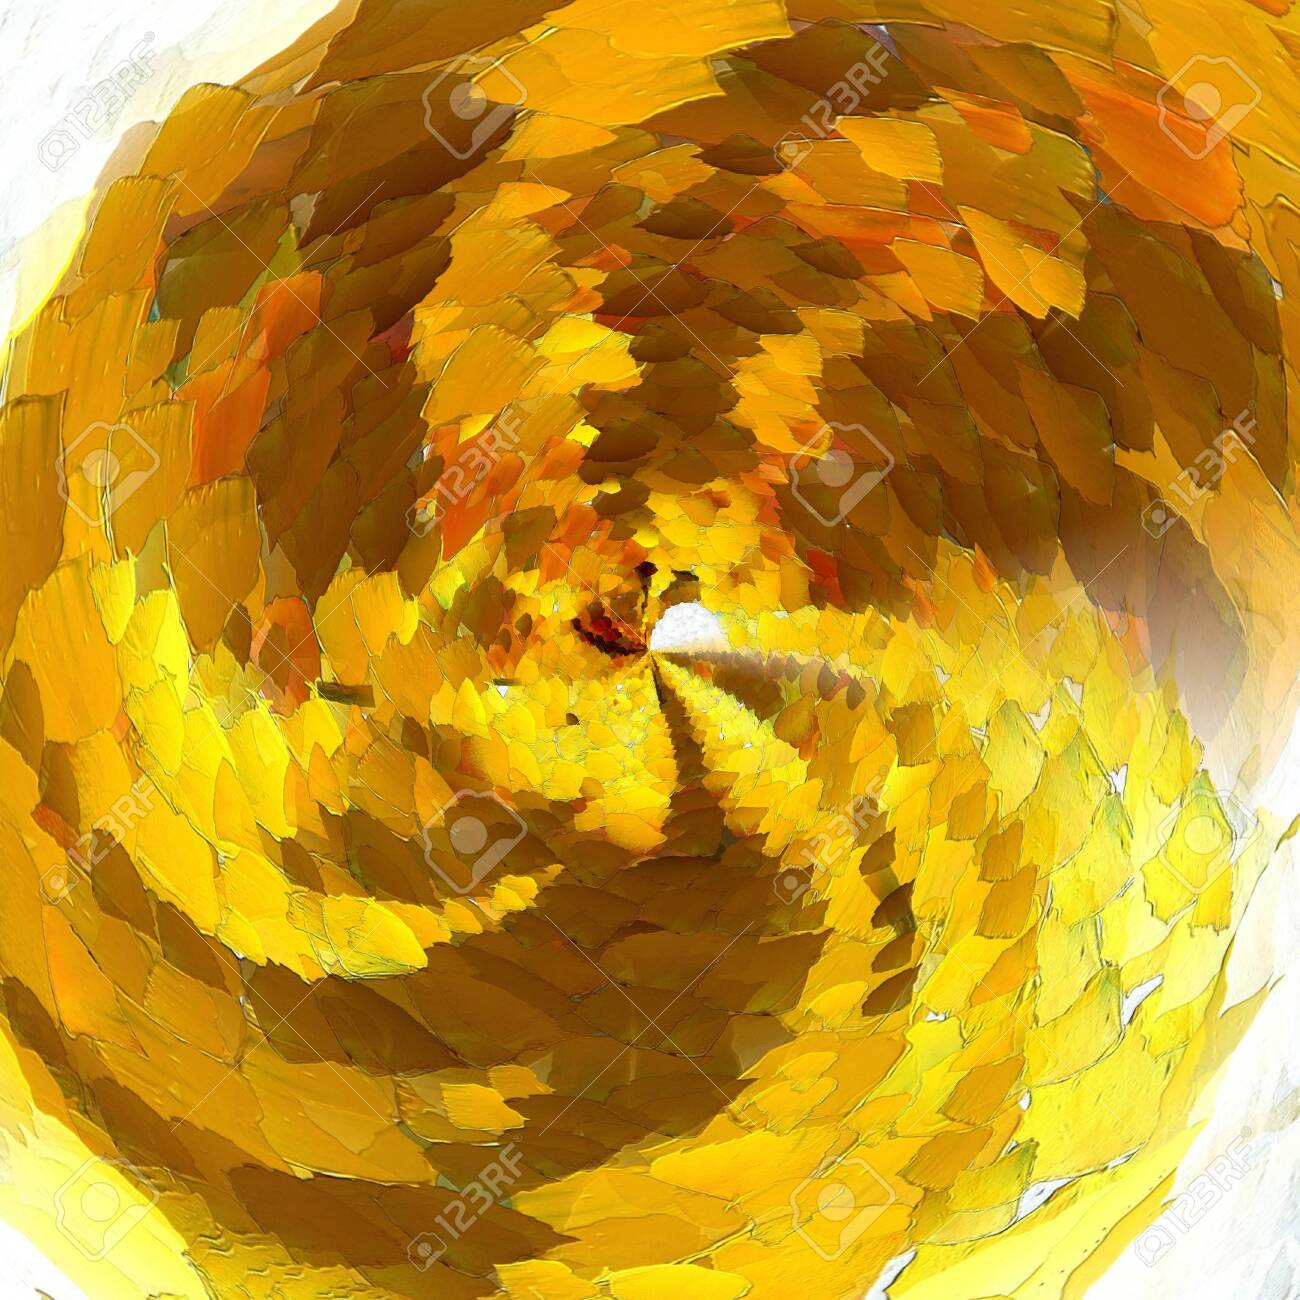 Liquid Golden Drawing Abstract Gold Background Fine Art Print